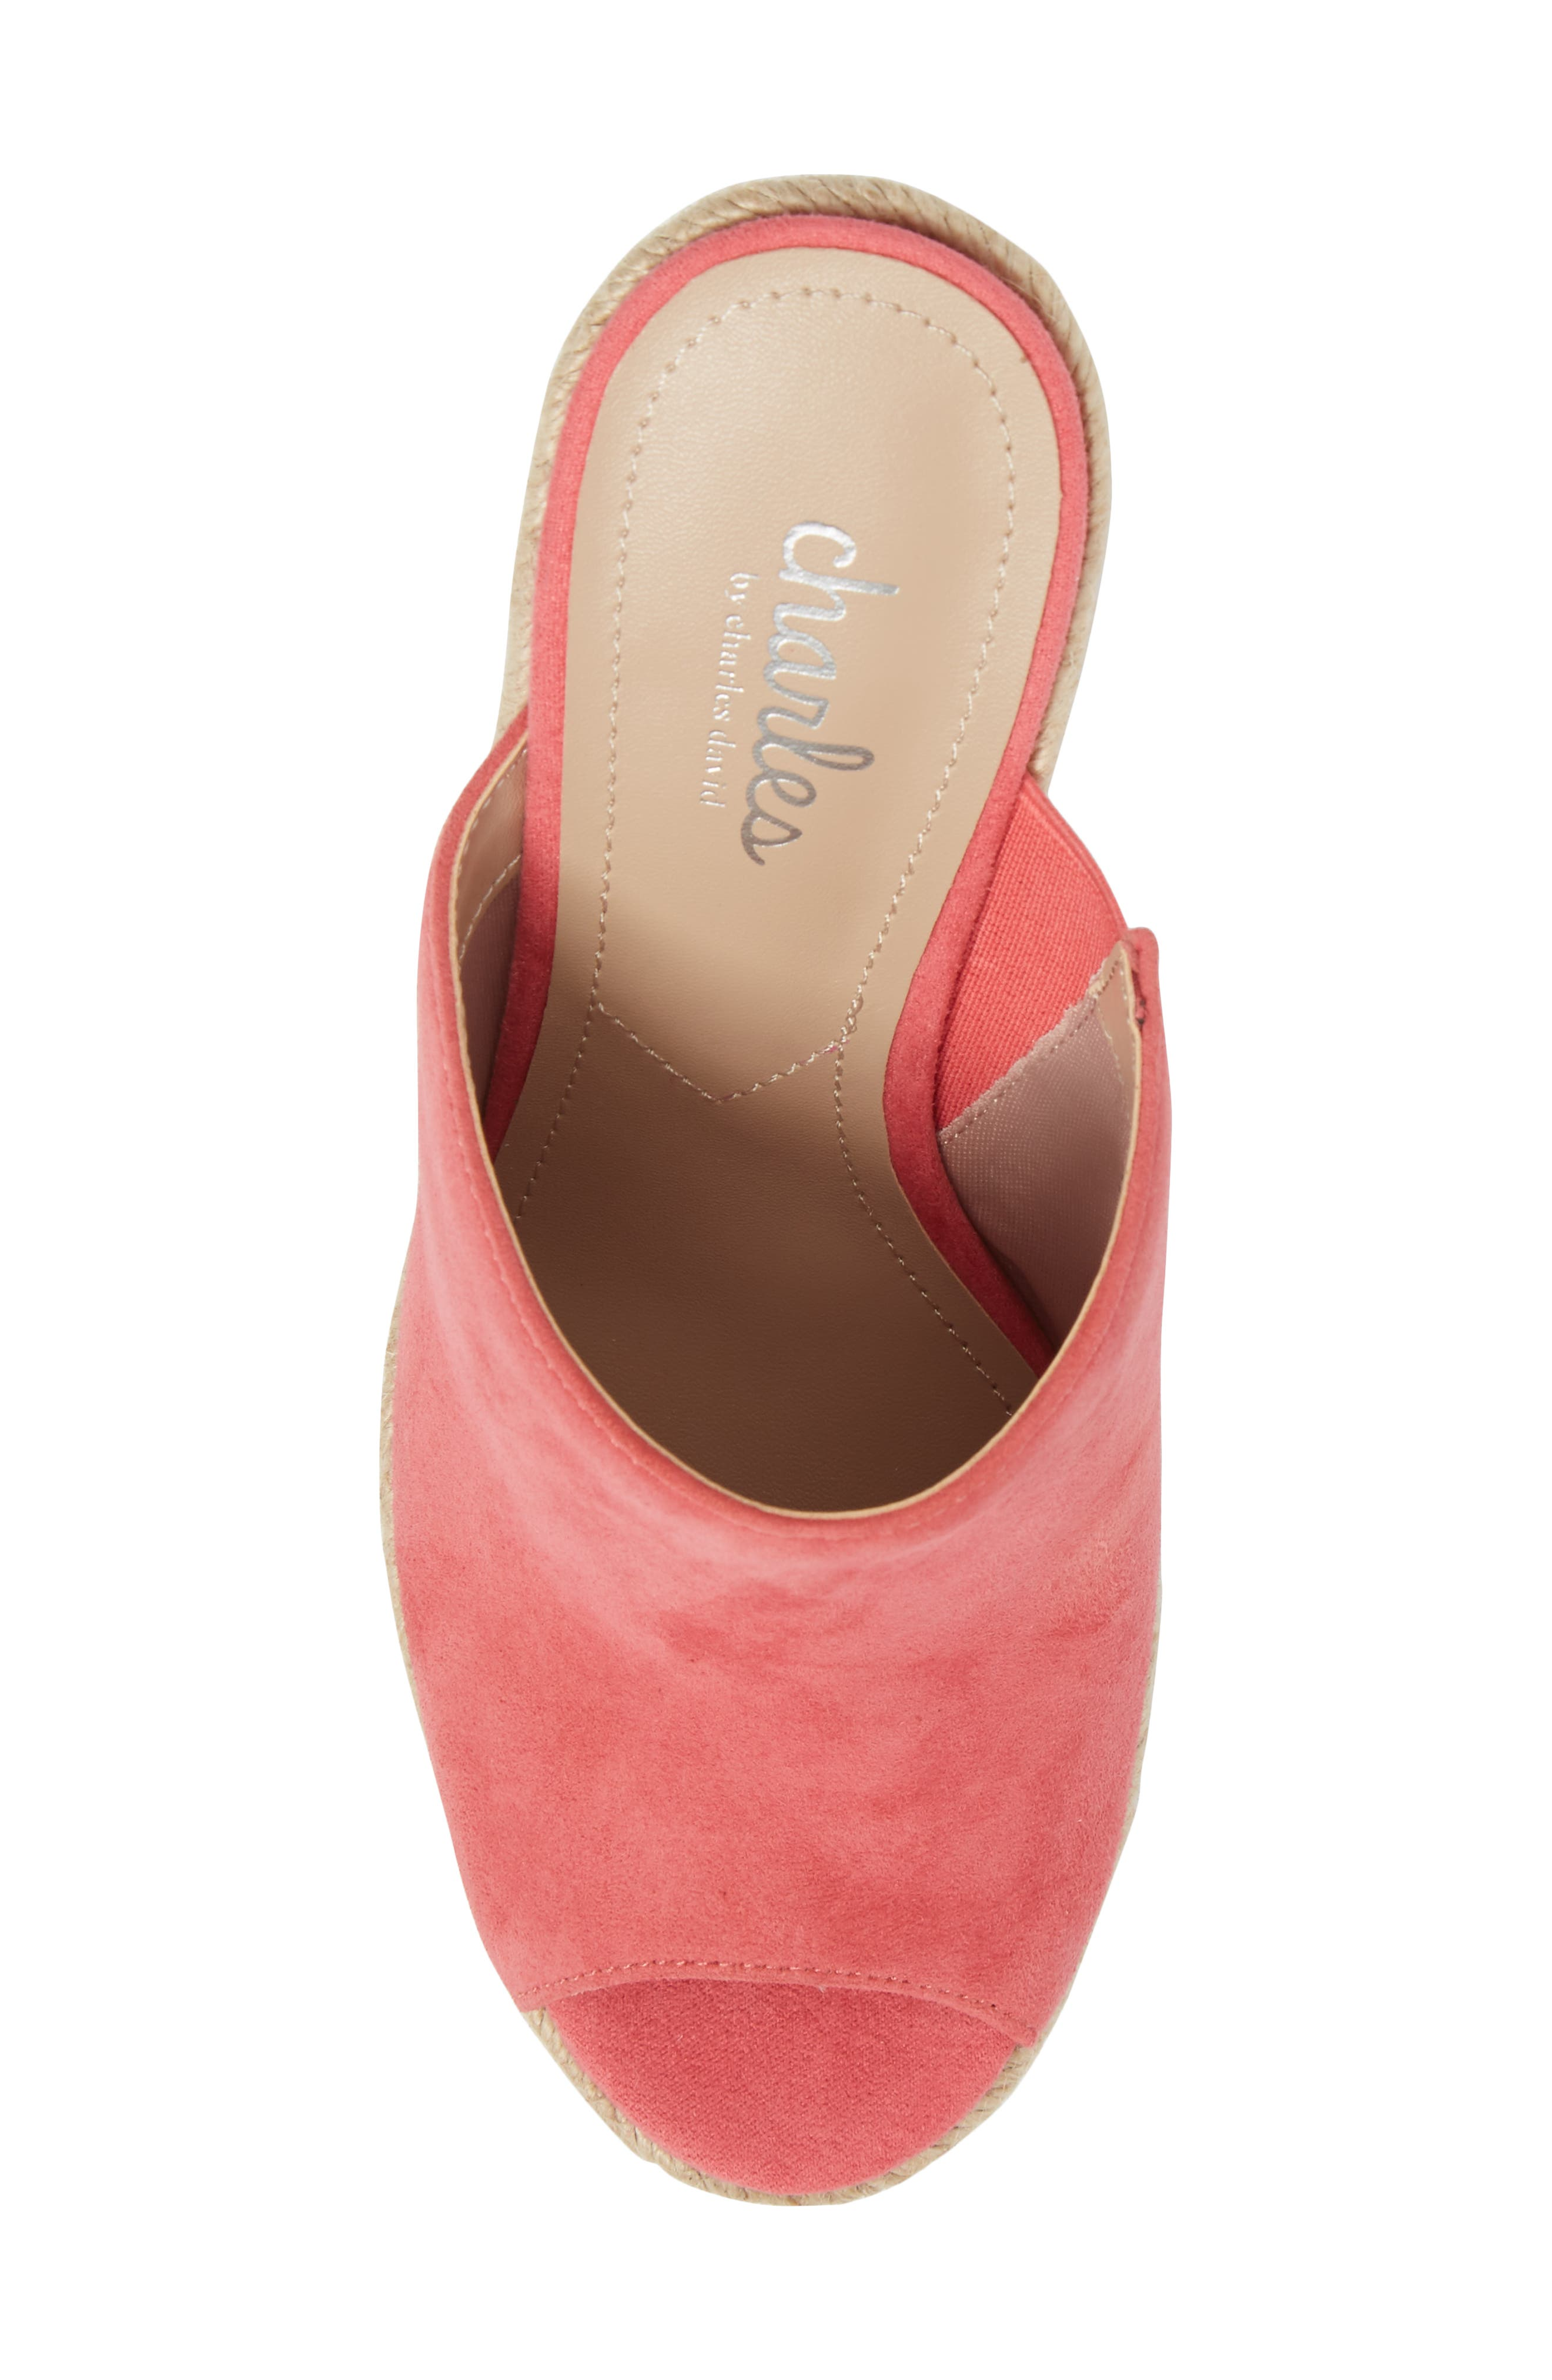 Balen Wedge,                             Alternate thumbnail 9, color,                             Coral Suede